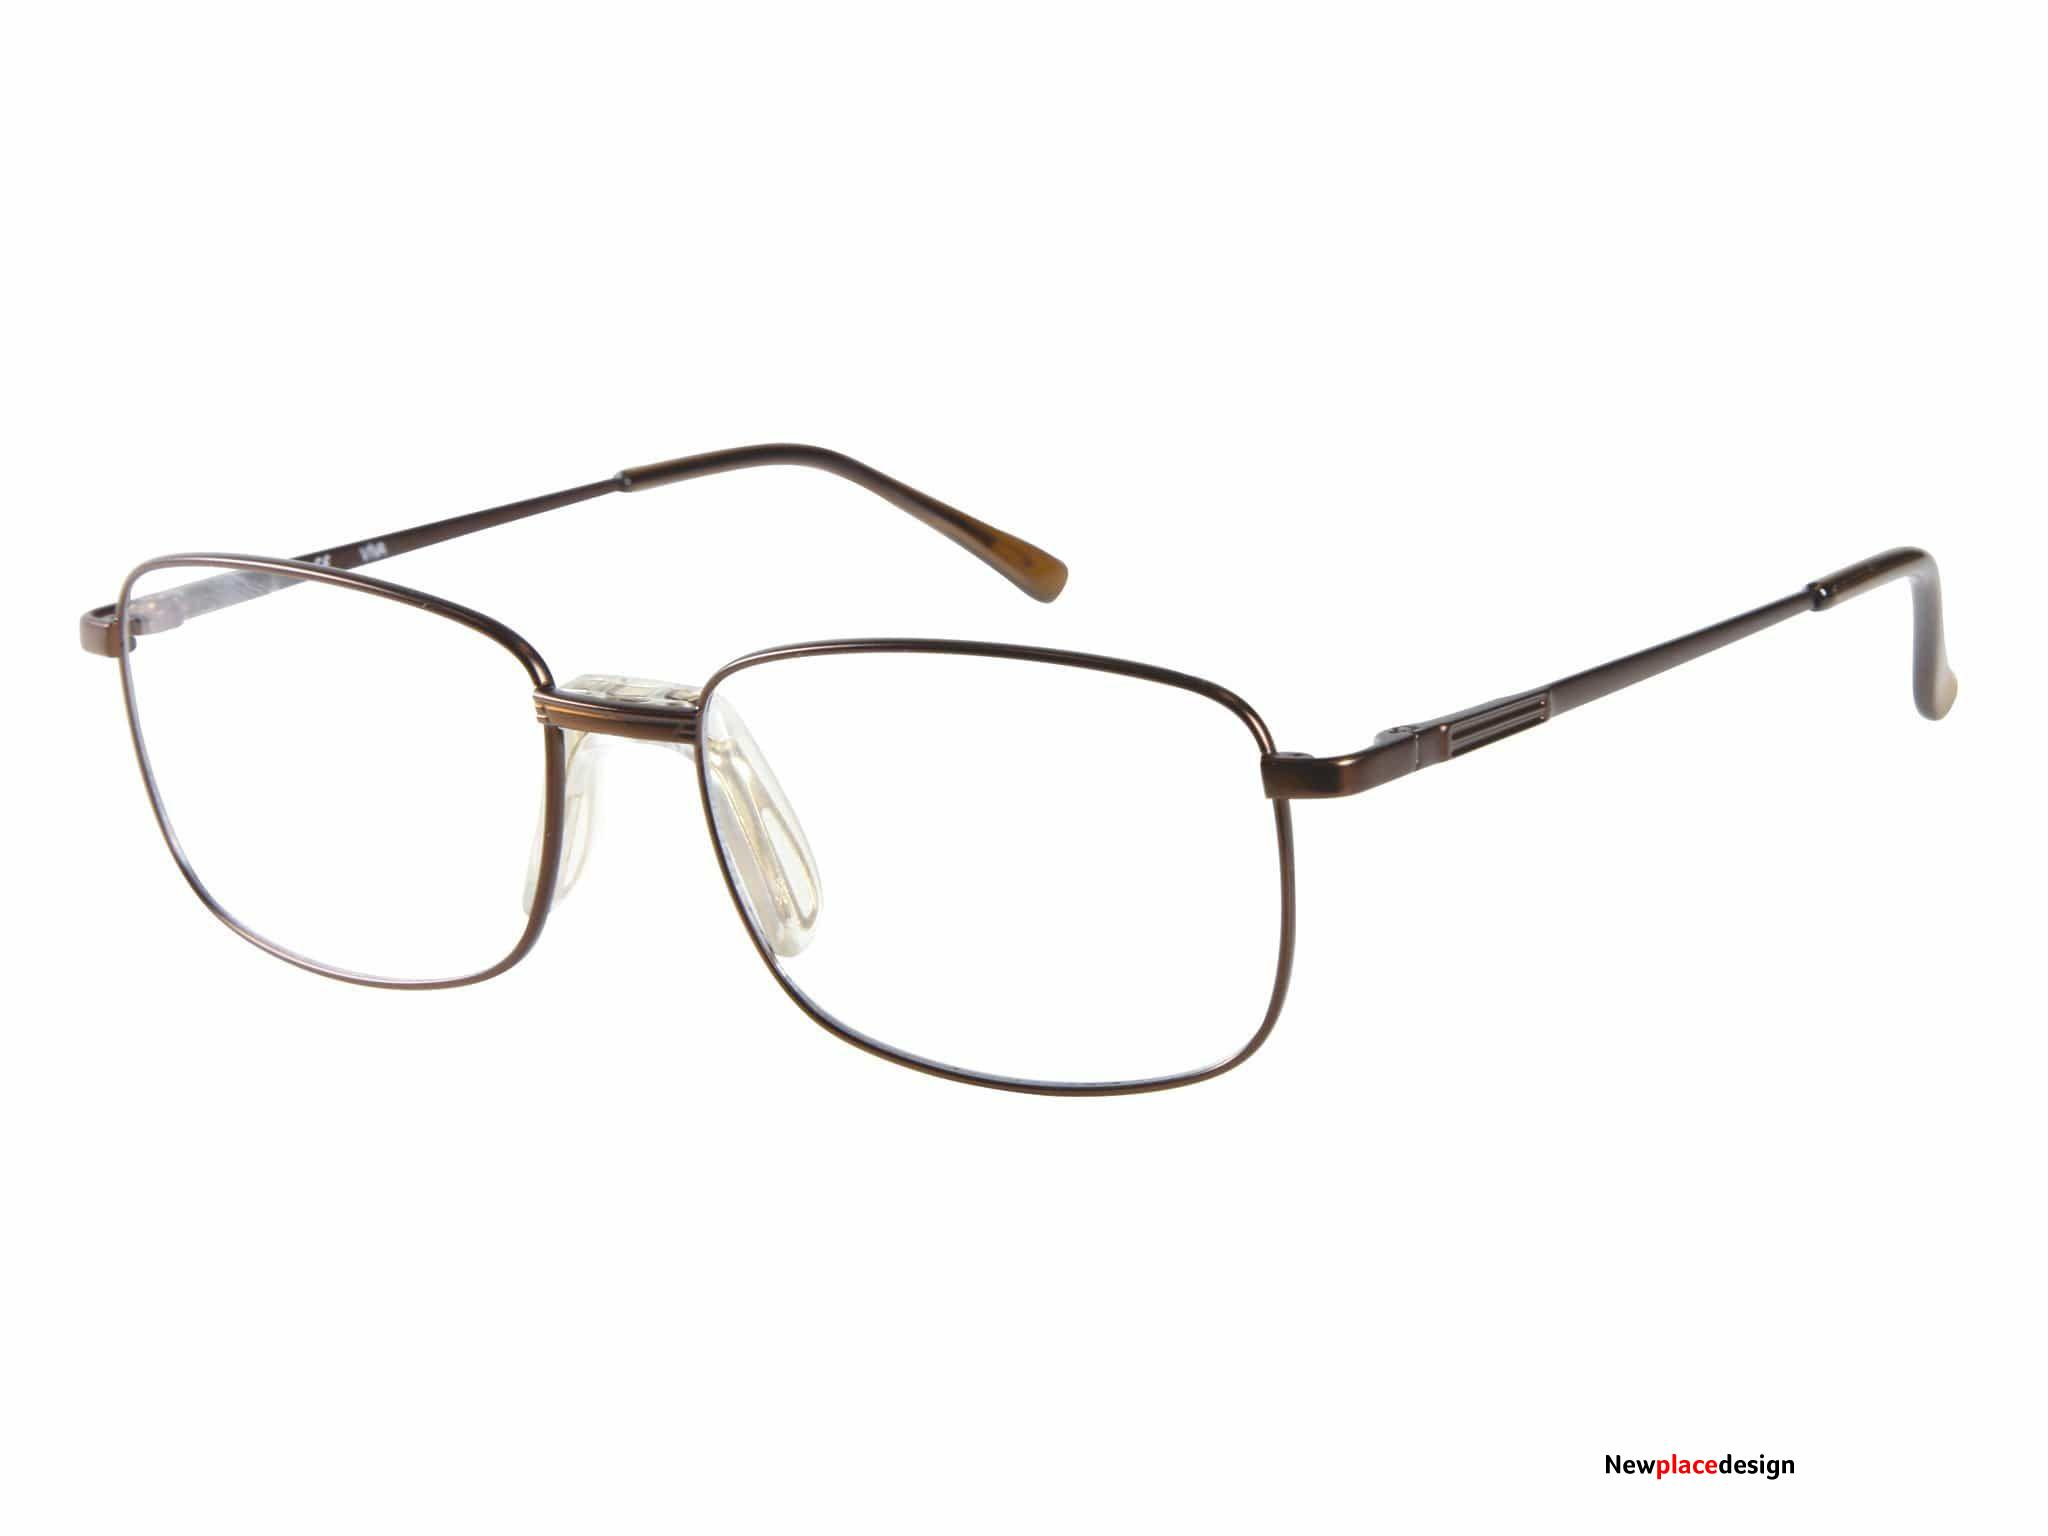 Viva VV0303 Eyeglasses - 54-16-145 / D96-D96 - Brown